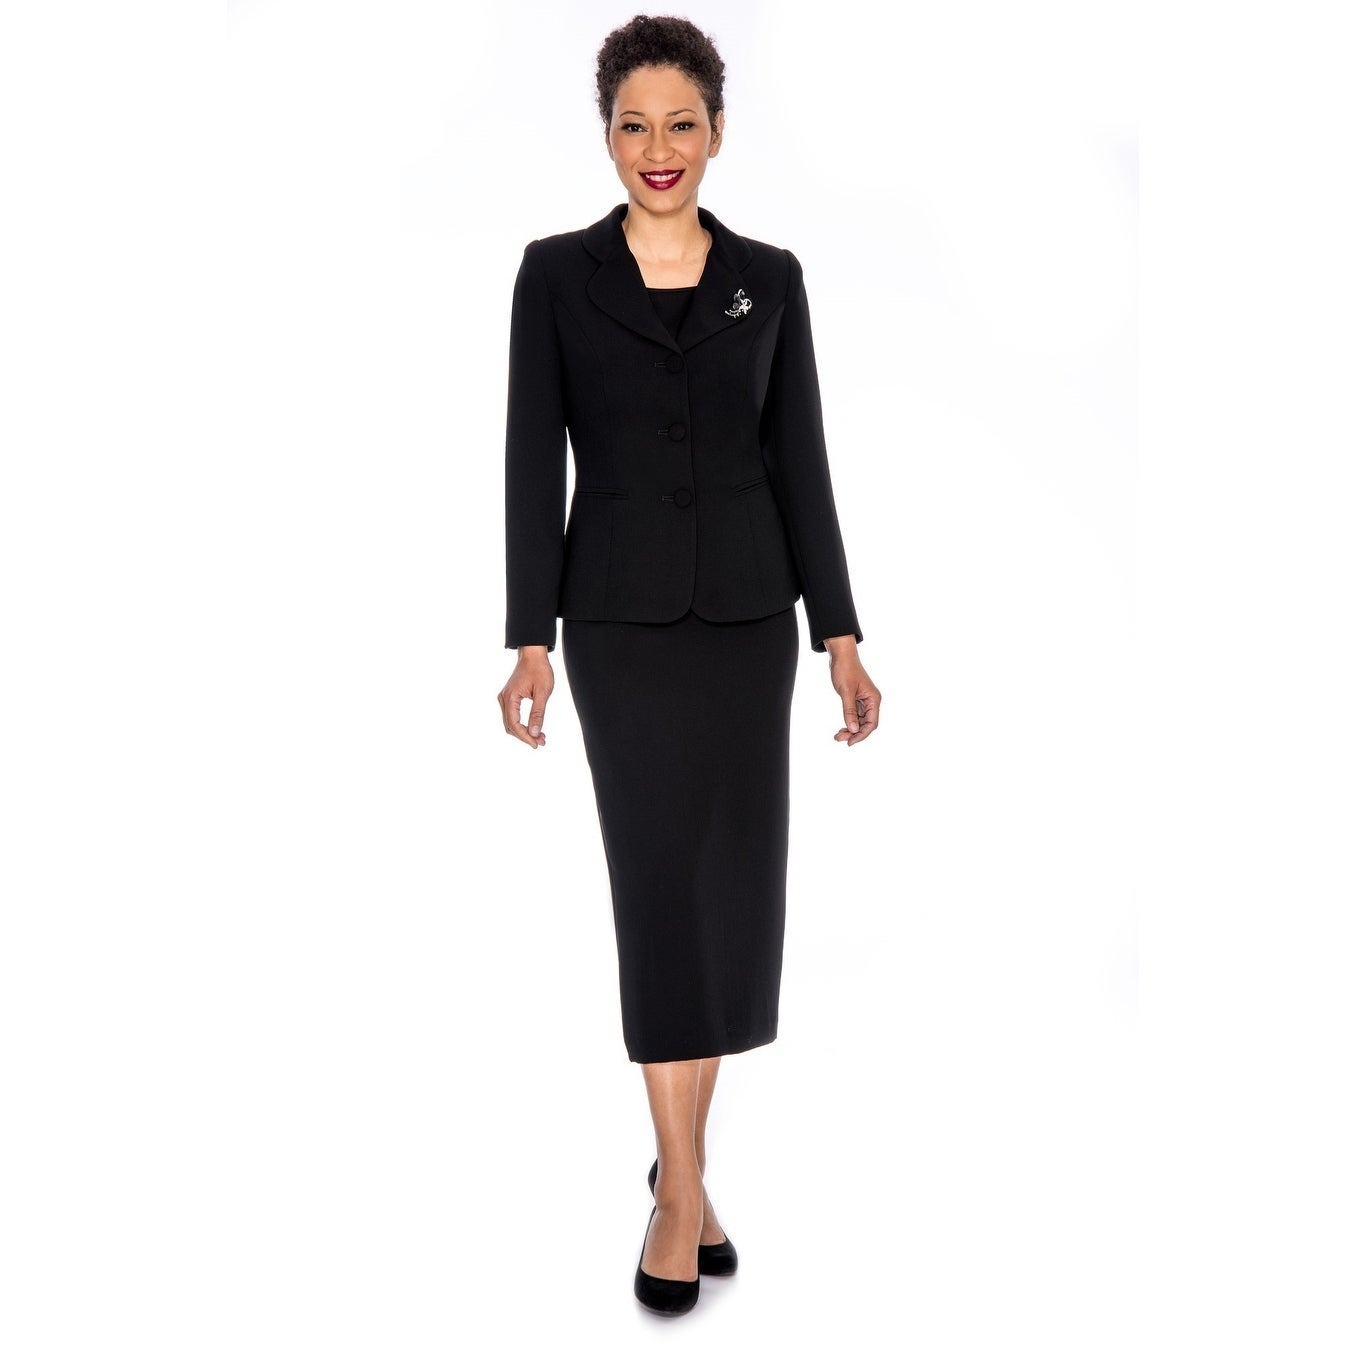 Pant Suits Fashion Dark Blue Blazer Women Business Suits Formal Office Suits Work Wear Pant And Jacket Sets Beauty Salon Uniforms Delicacies Loved By All